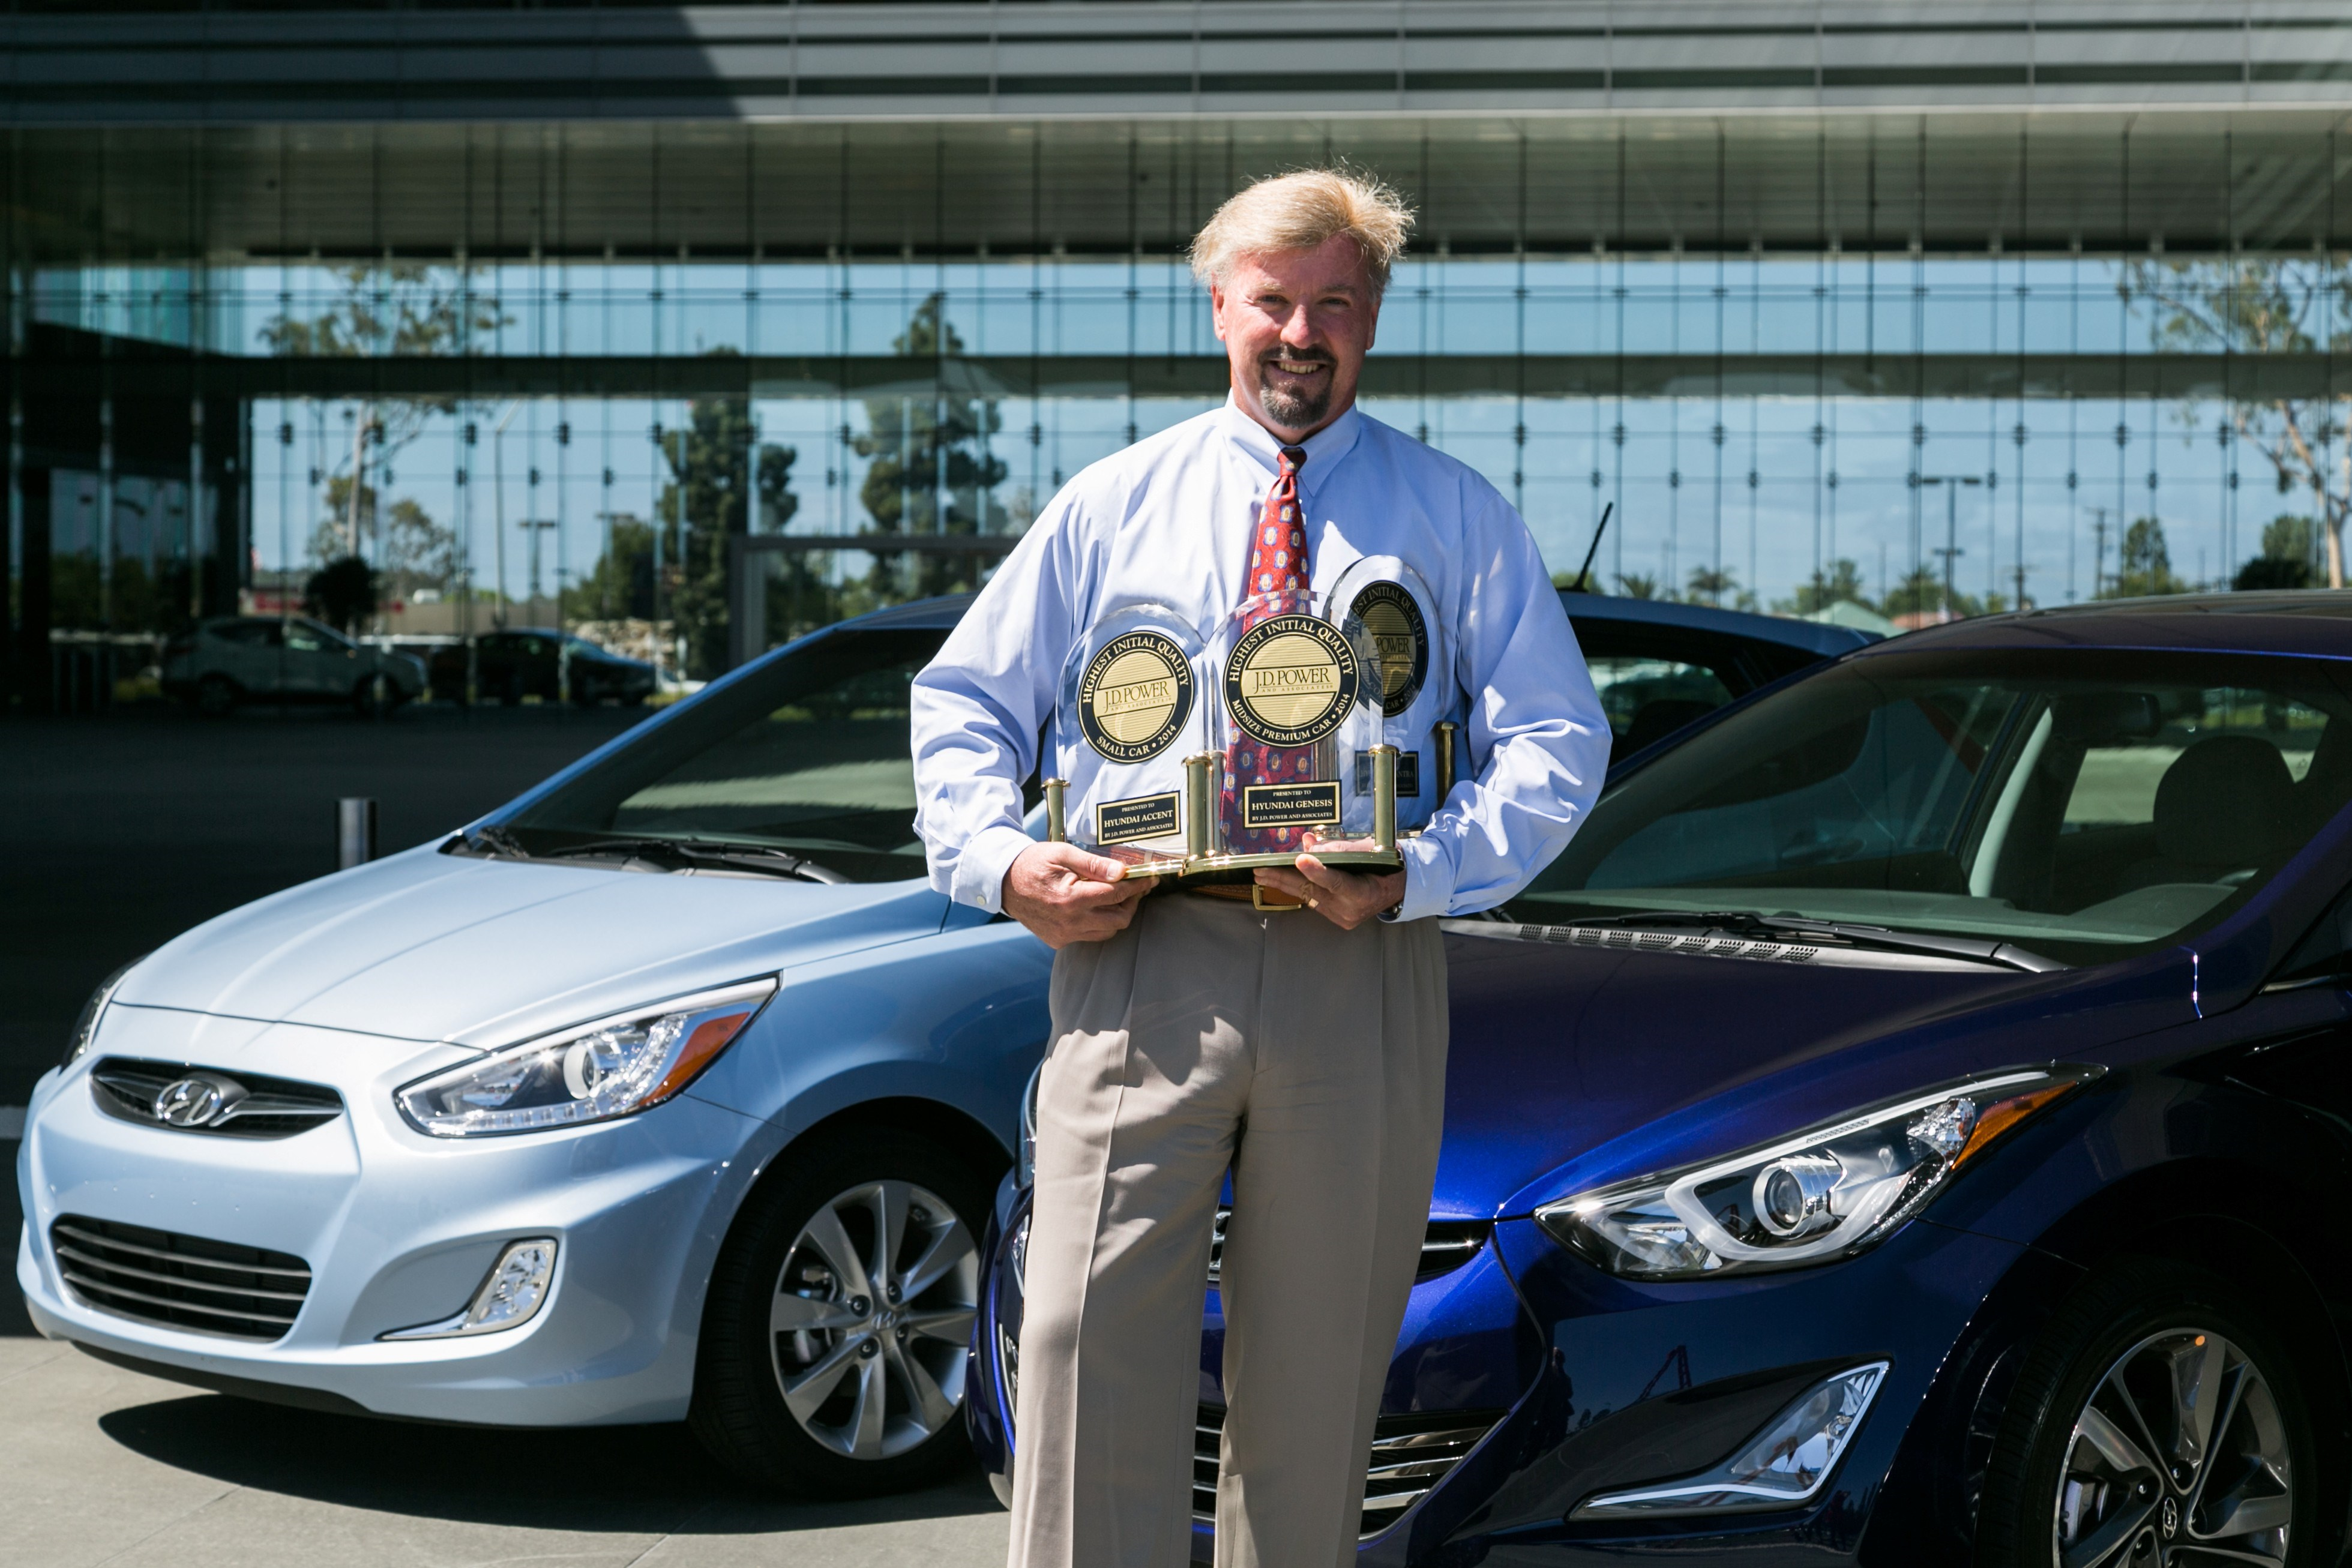 W gerald flannery named interim president and ceo of for General motors atlanta jobs